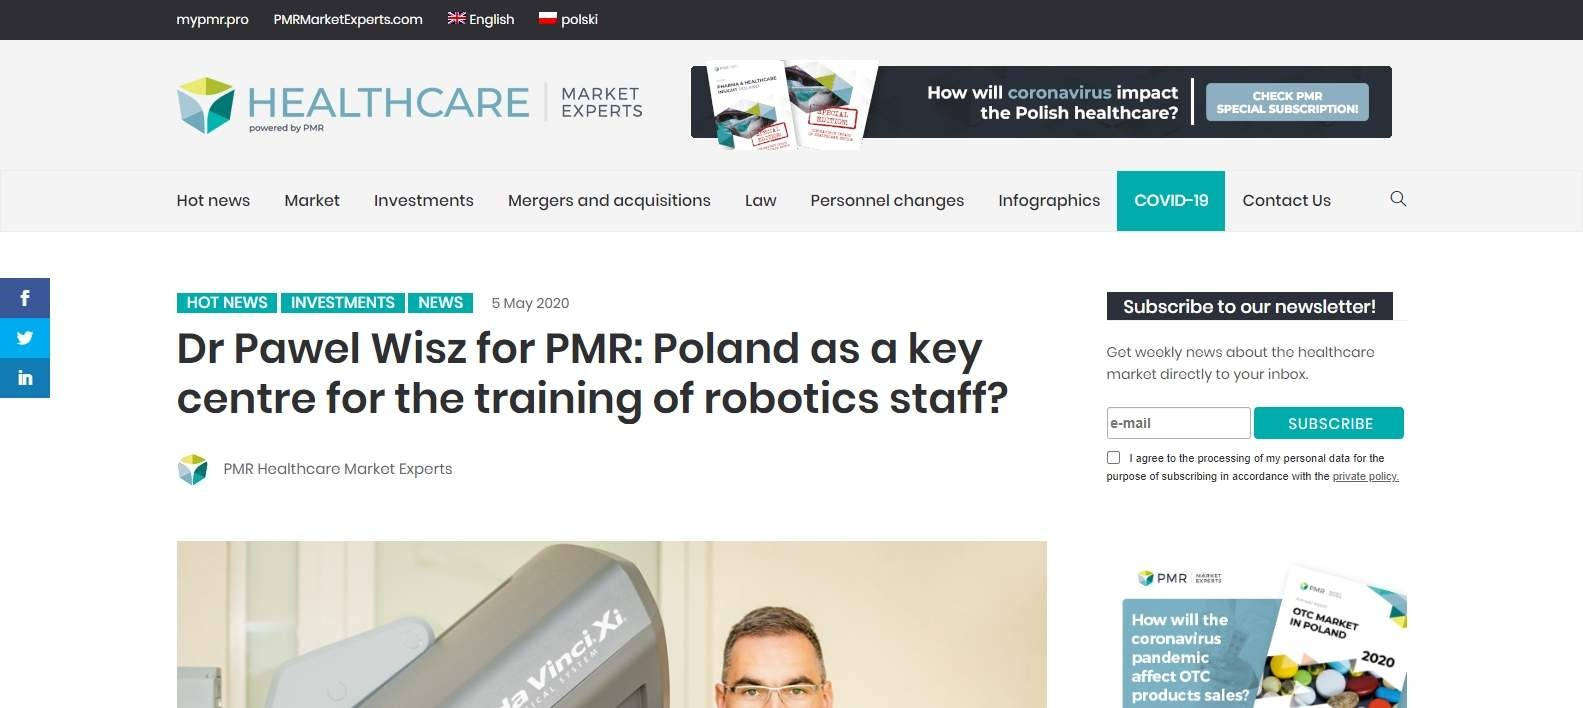 dr pawel wisz for pmr poland as a key centre for the training of robotics staff